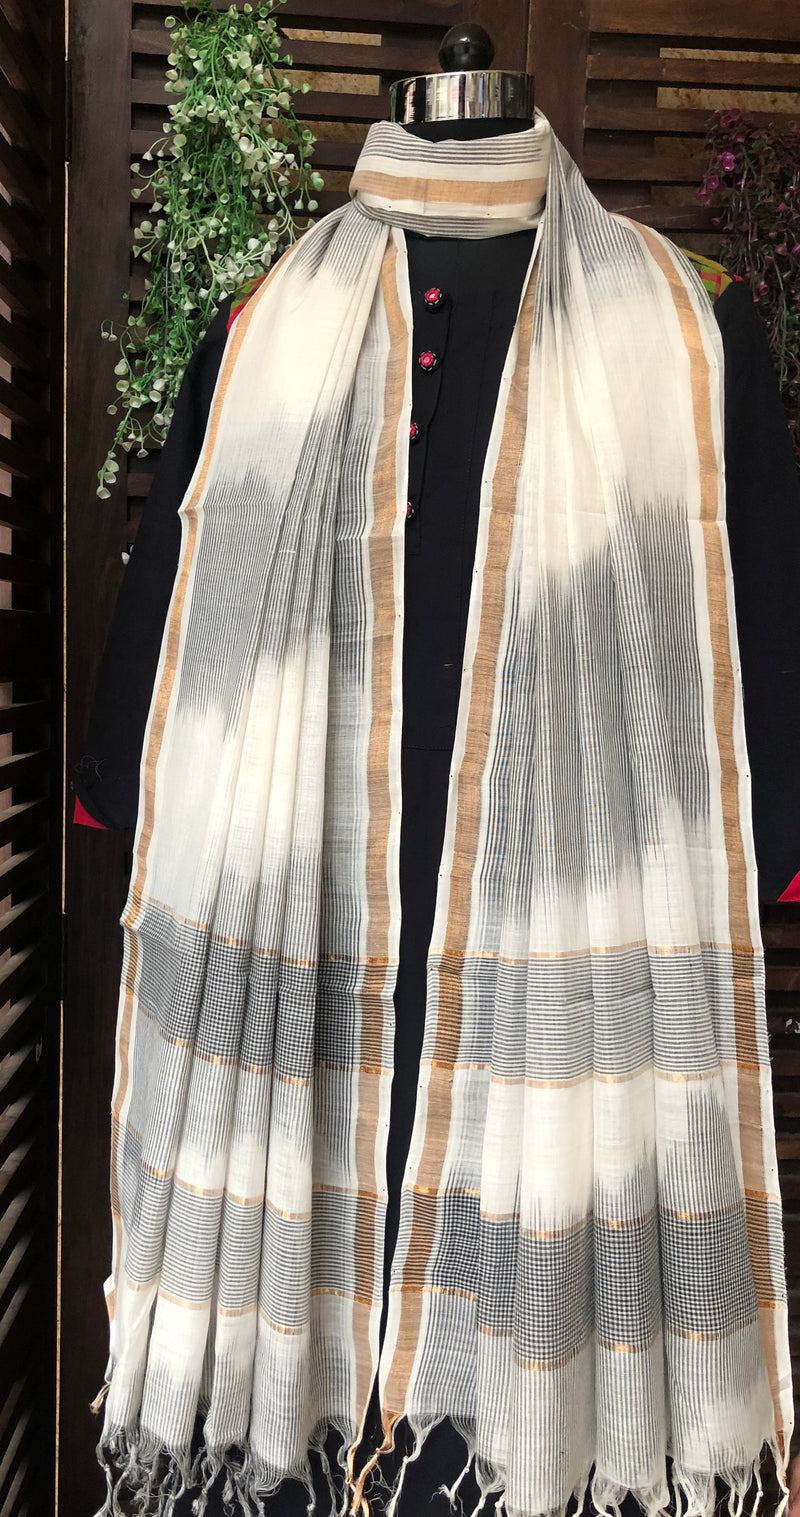 handloom cotton dupatta - pearl river & monochrome lines